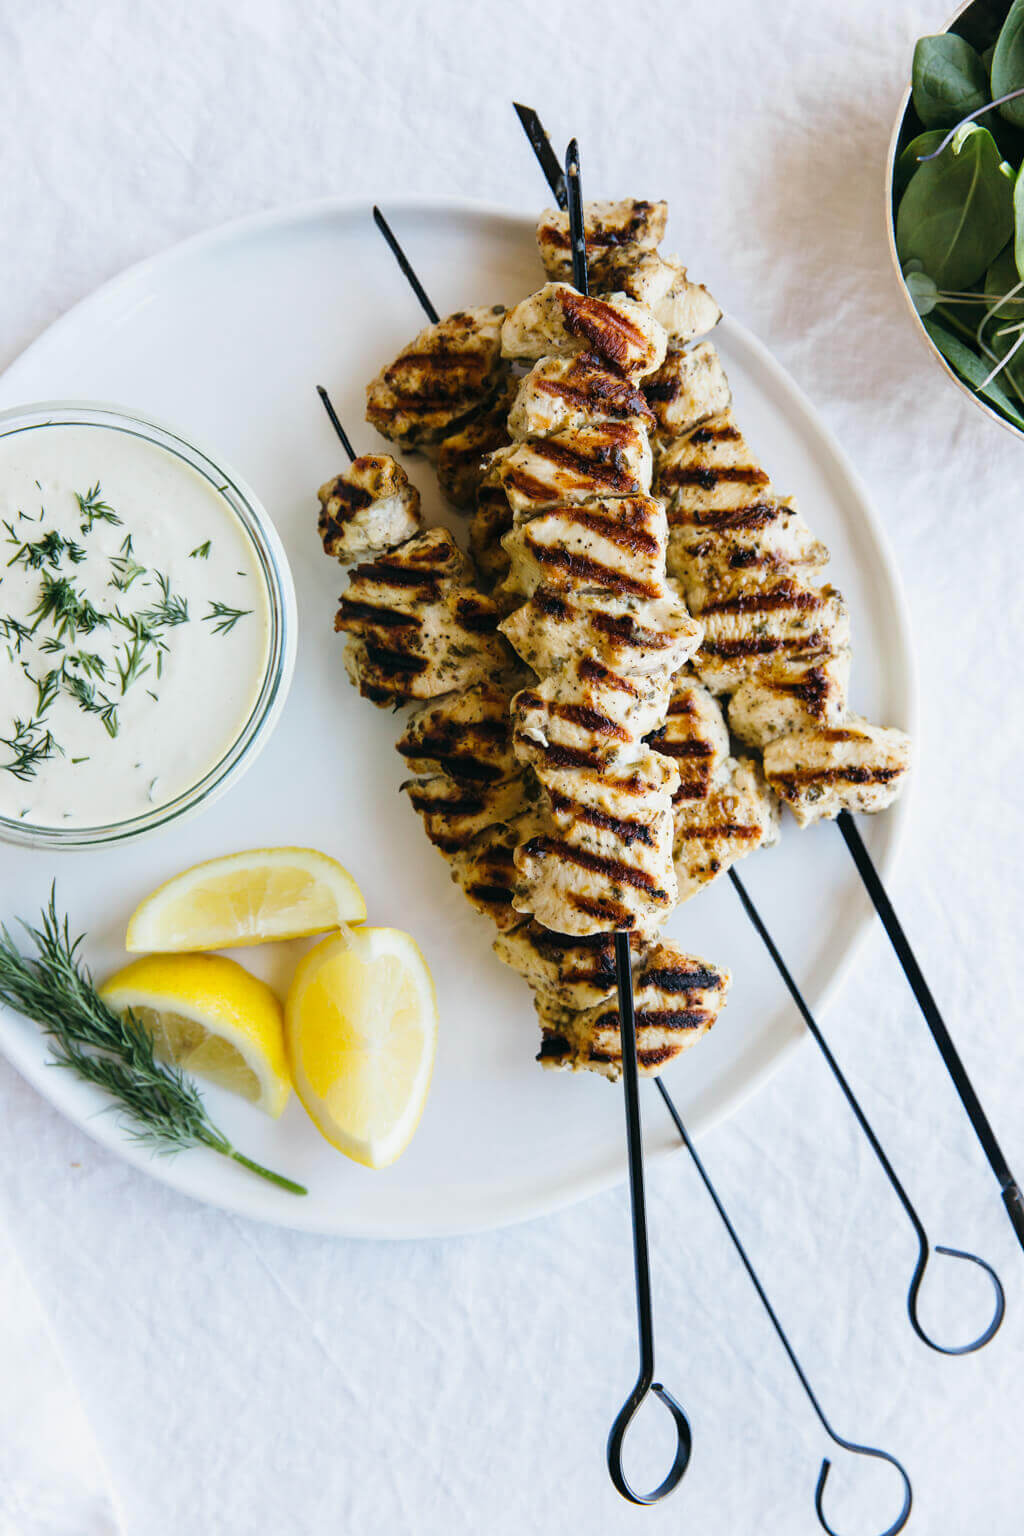 Grilled chicken souvlaki (lemon garlic chicken skewers) with dairy-free tzatziki. Gluten-free and paleo.